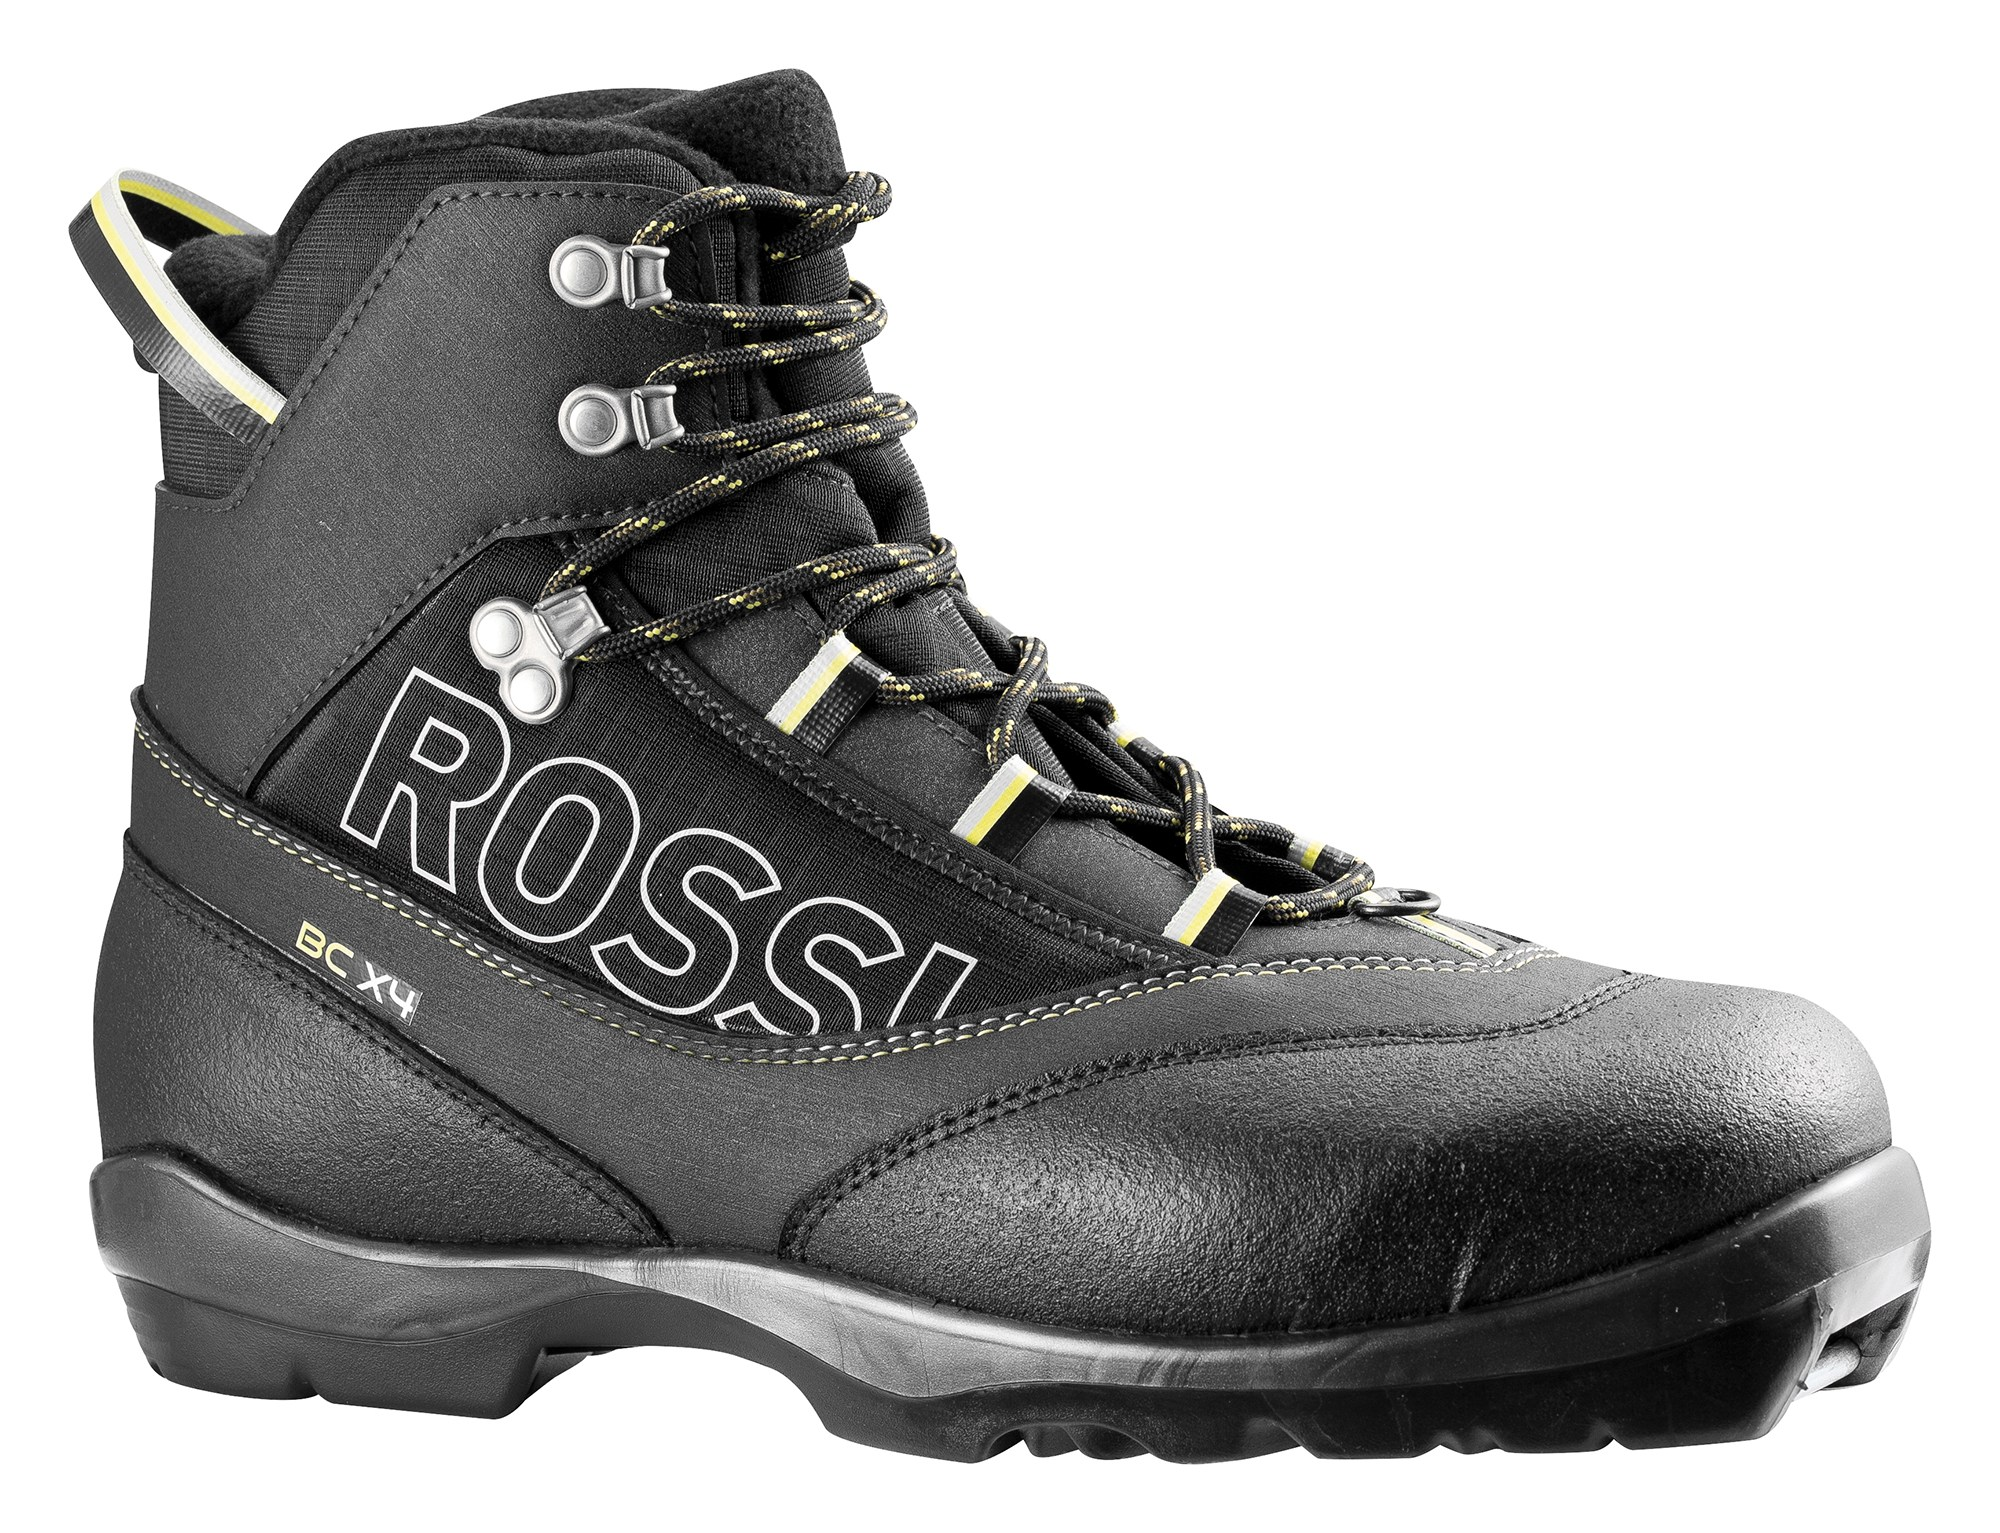 Rossignol BC X4 Cross-Country Ski Boots